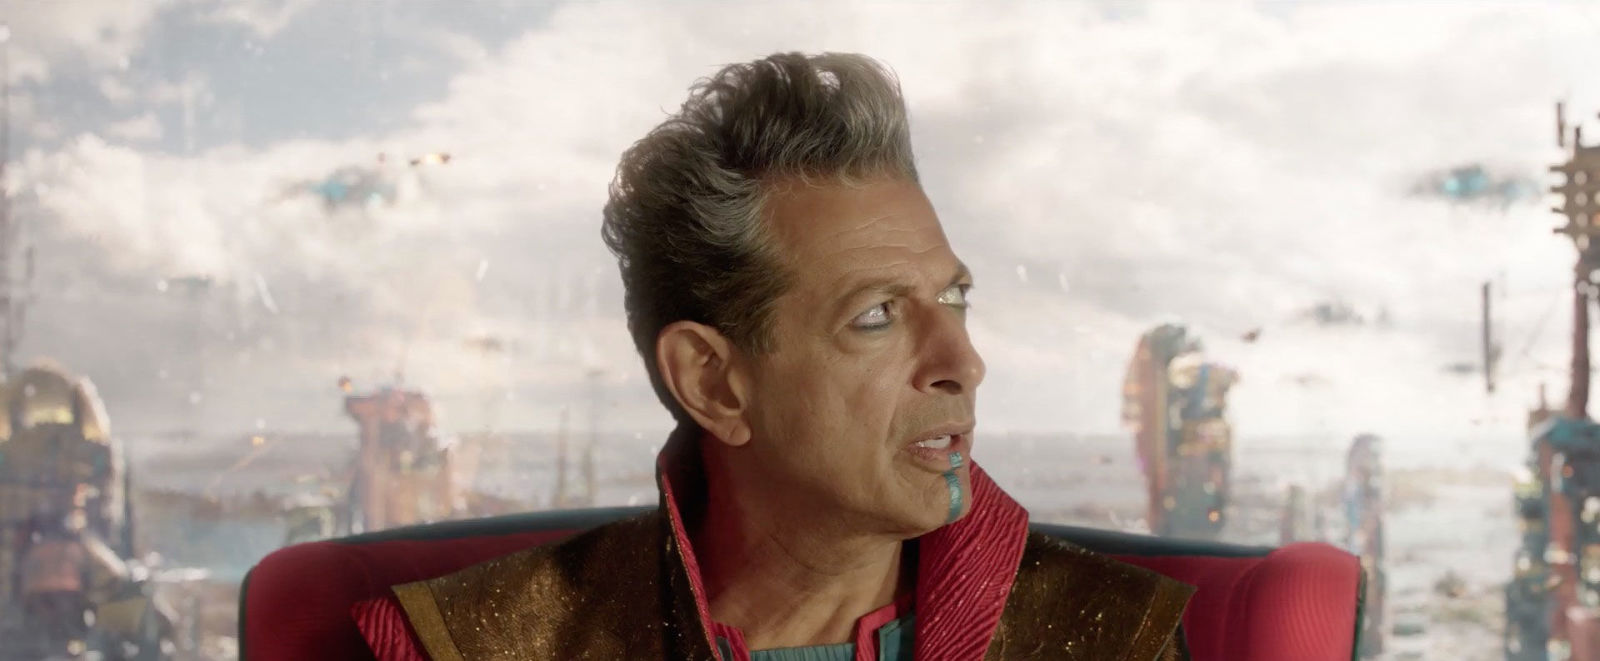 Jeff Goldblum is back in Jurassic World: Fallen Kingdom featurette